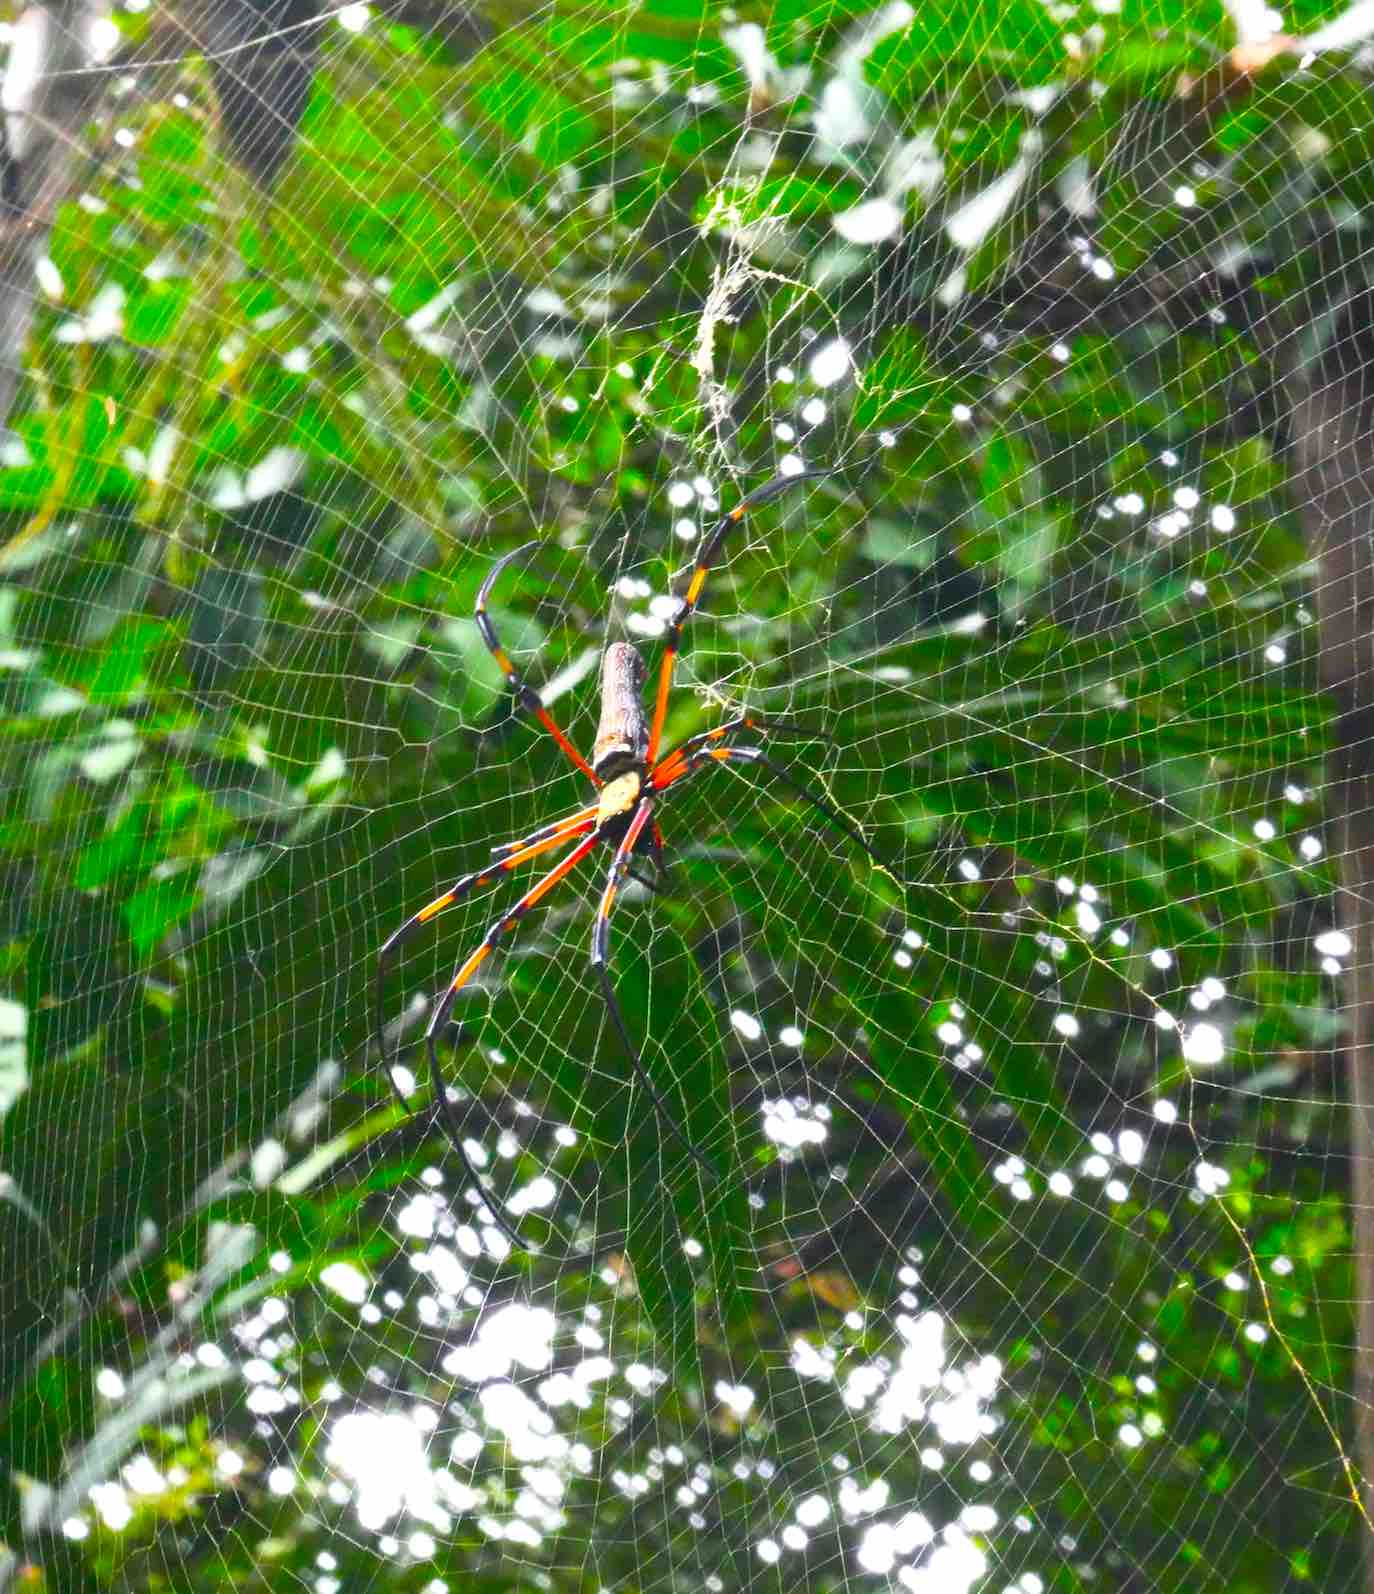 colour-spider-sighted-at-kl-canopy-walk-aspirantsg